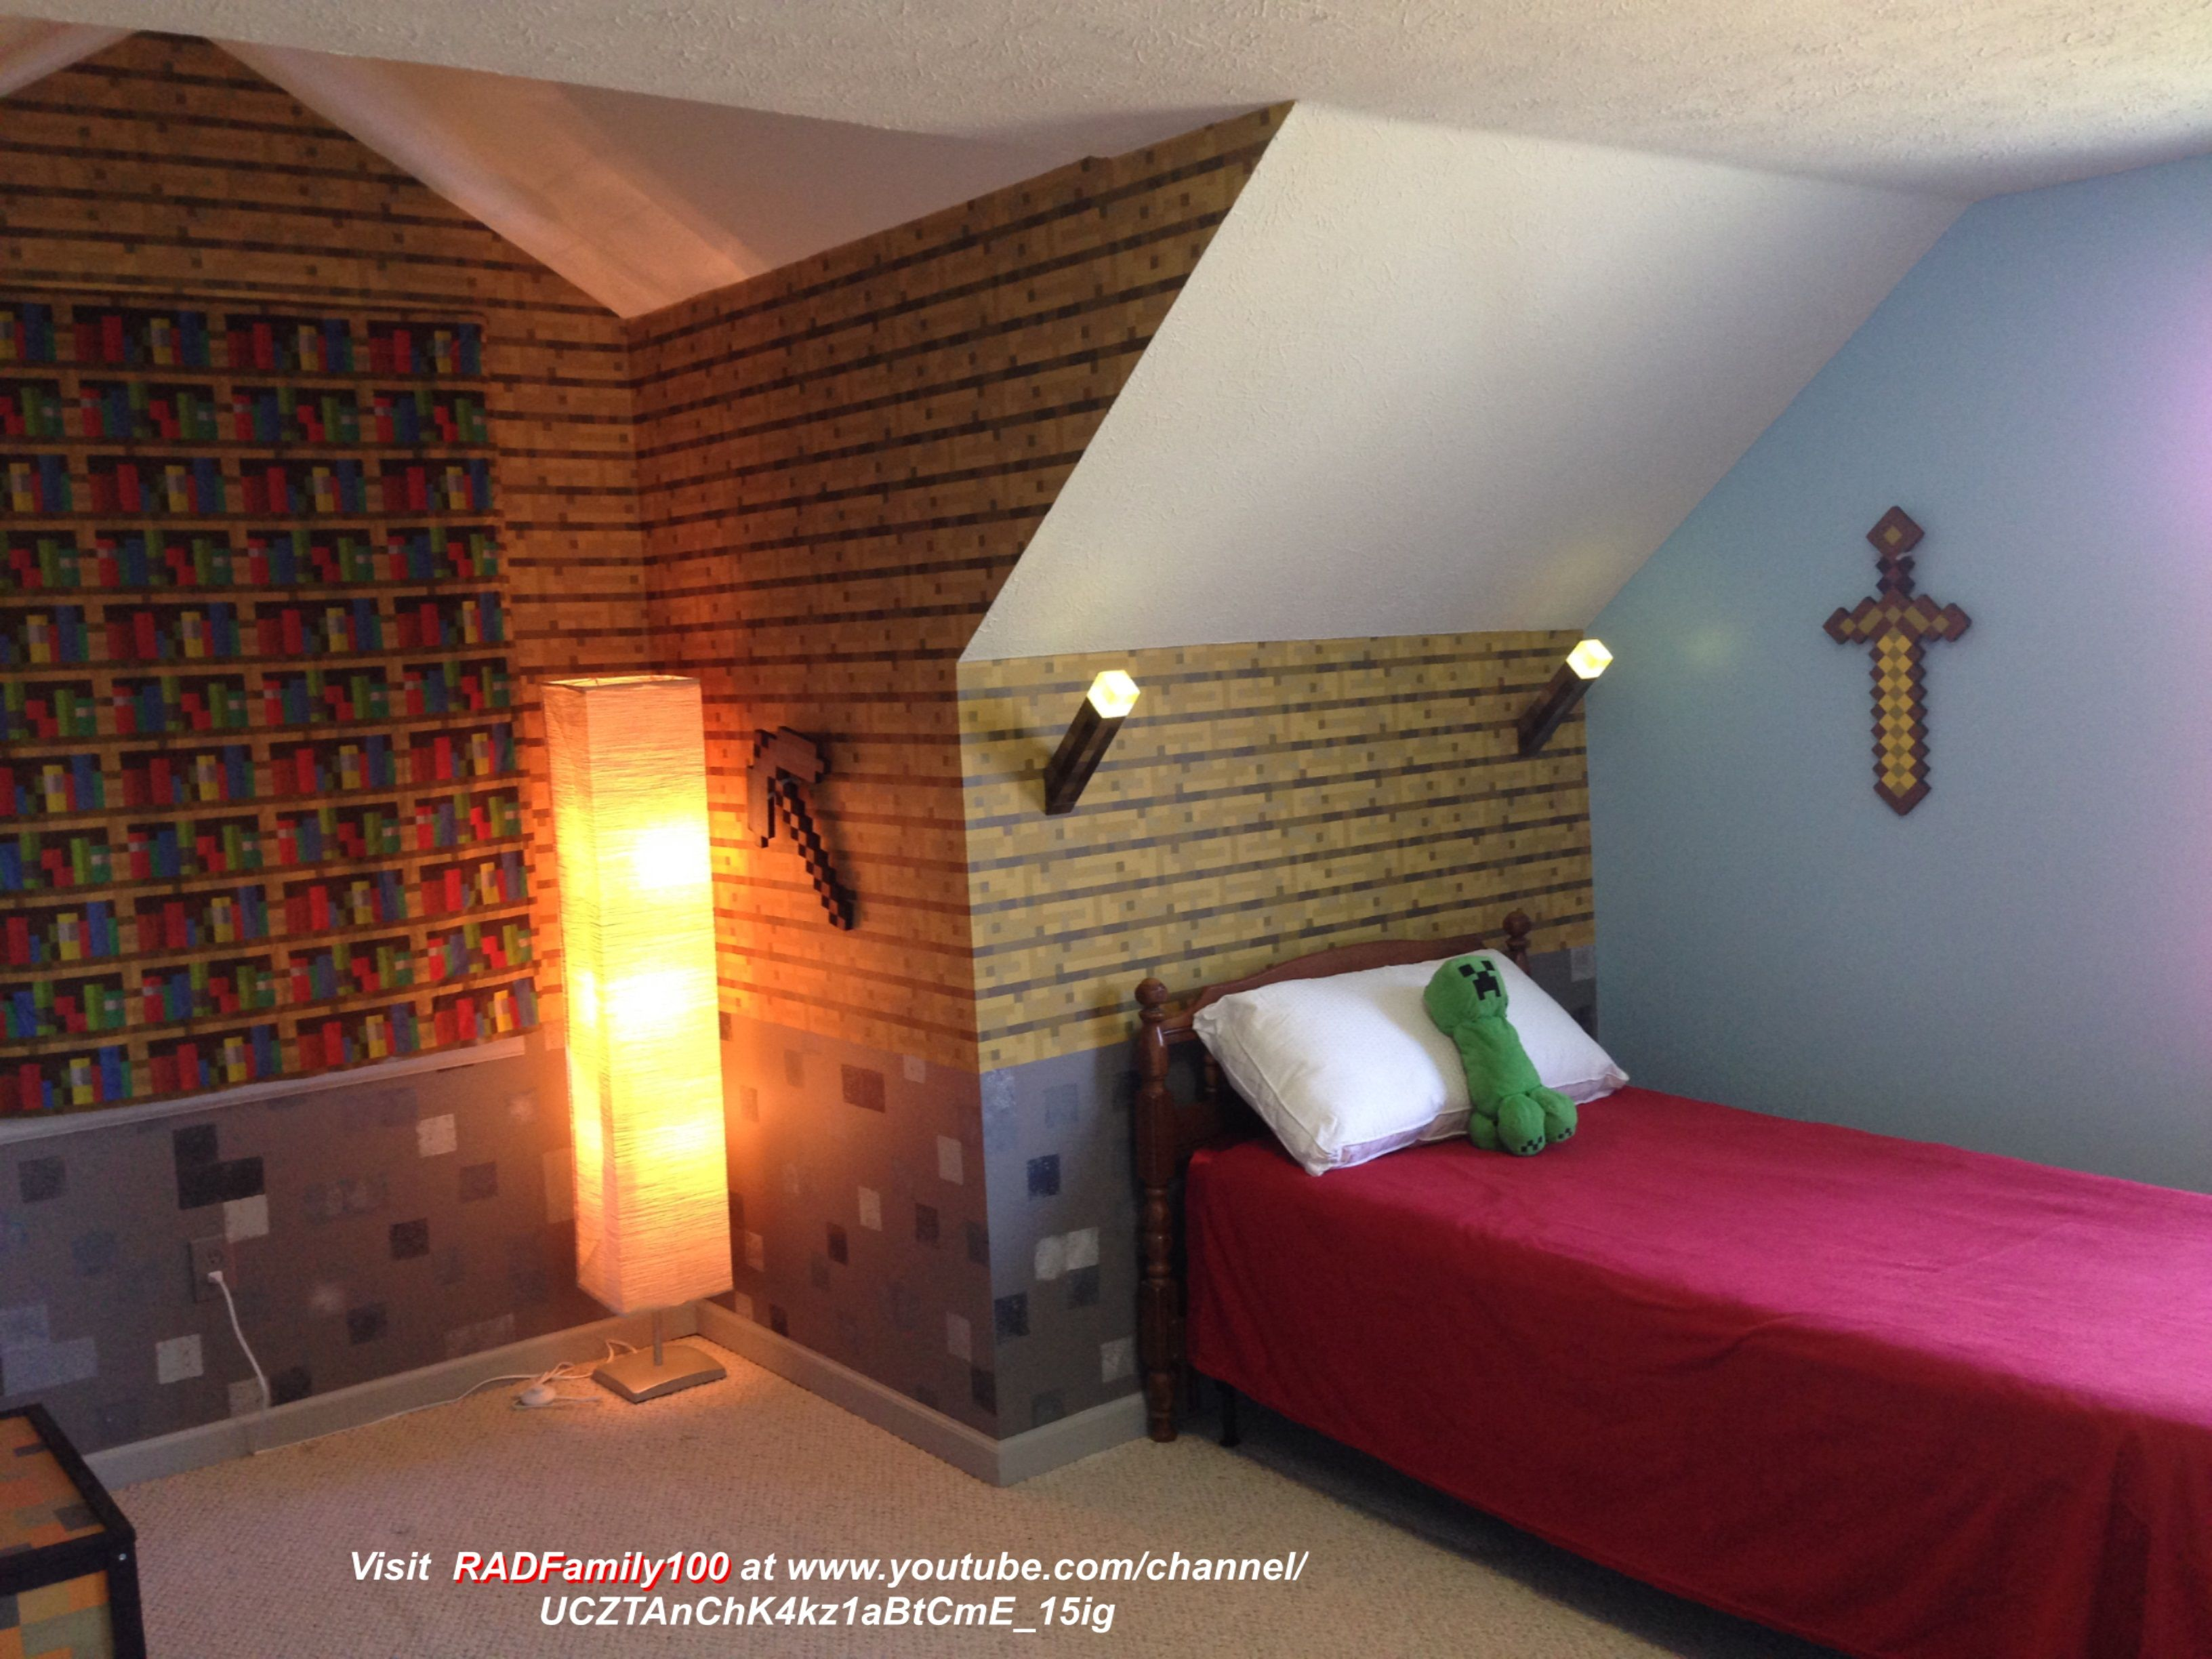 Minecraft Themed Bedroom I Made The Bed Area To Look Like Inside A Minecraft House The Side Walls Minecraft Room Decor Minecraft Room Minecraft Bedroom Decor